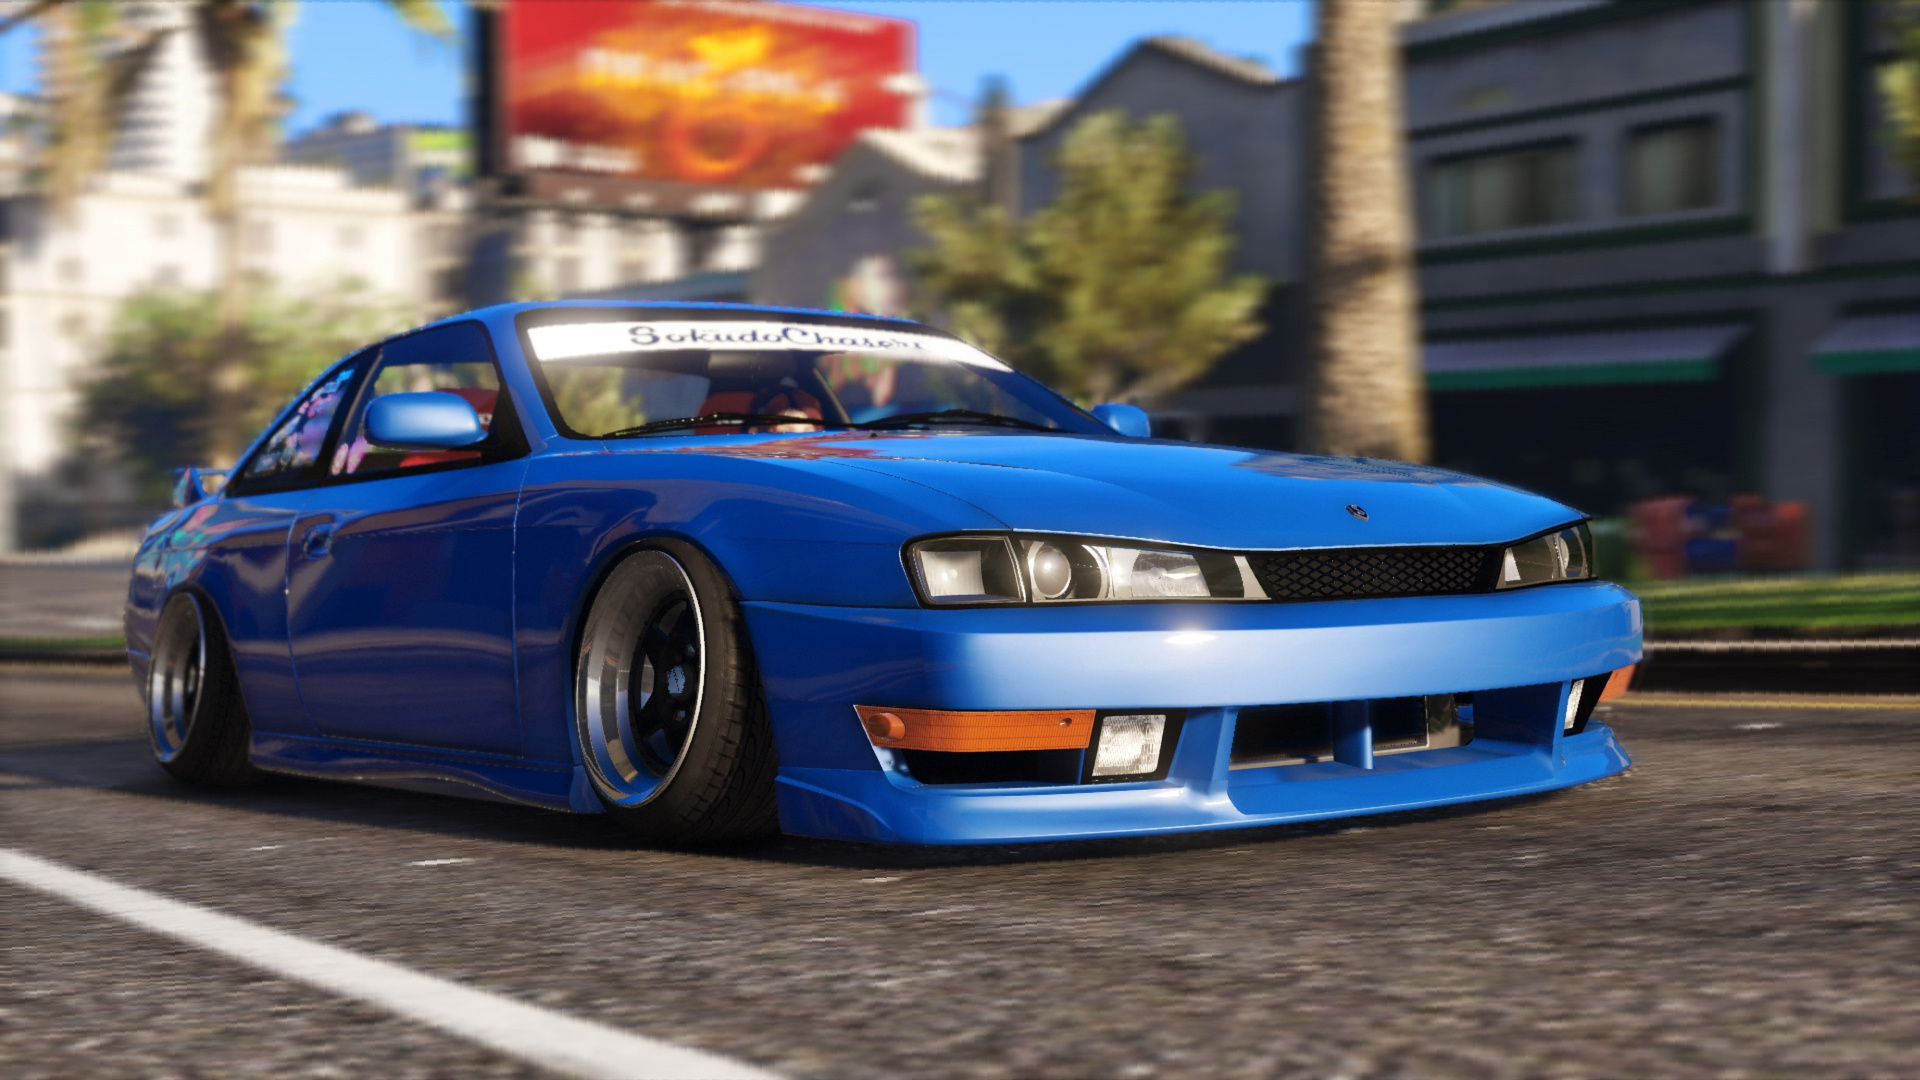 nissan silvia s14 kouki stance replace tuning gta5. Black Bedroom Furniture Sets. Home Design Ideas